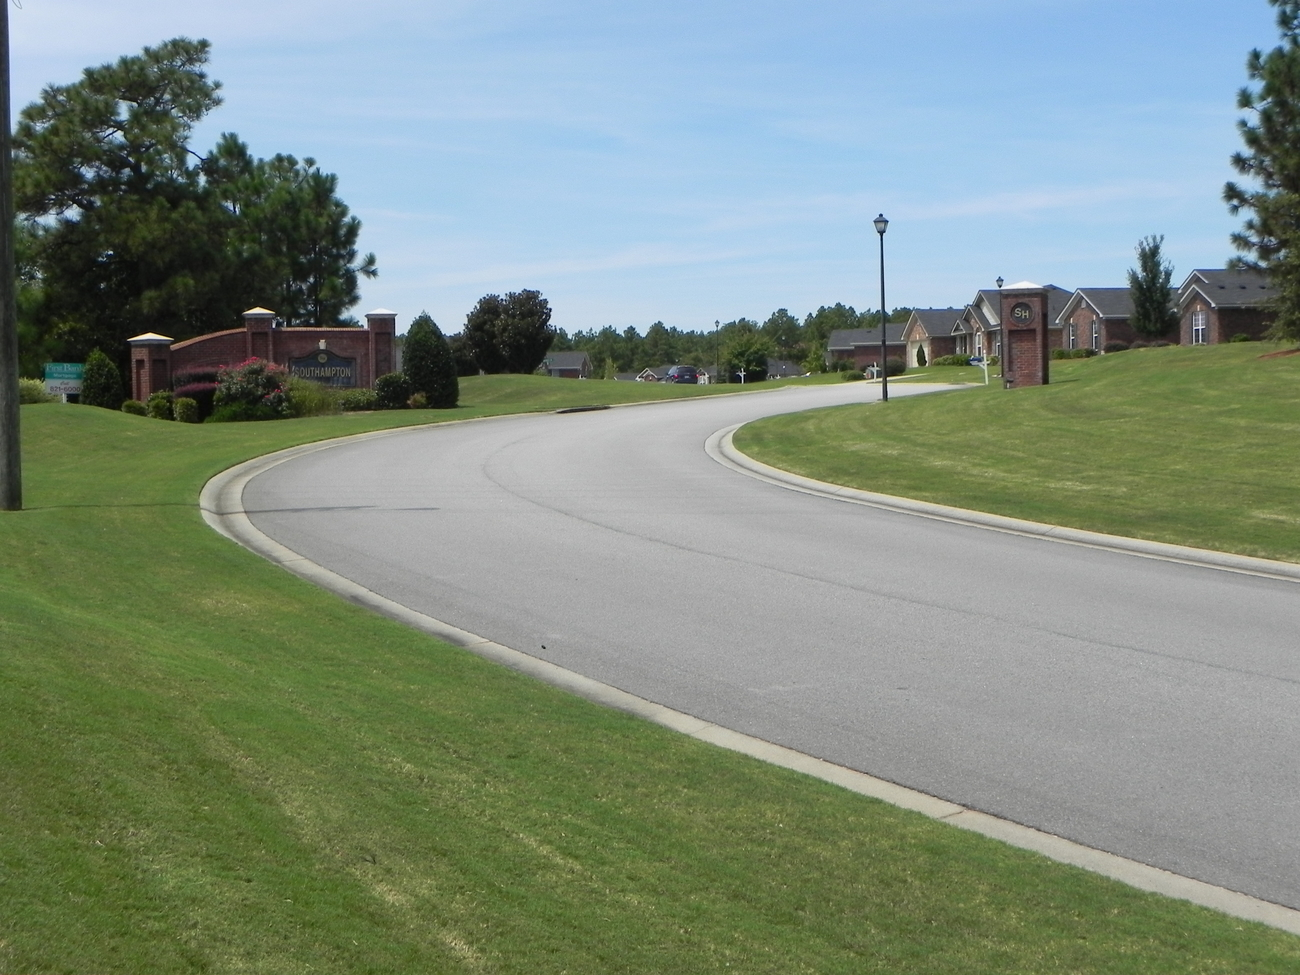 An image of the roadway to the Southhampton front entrance.